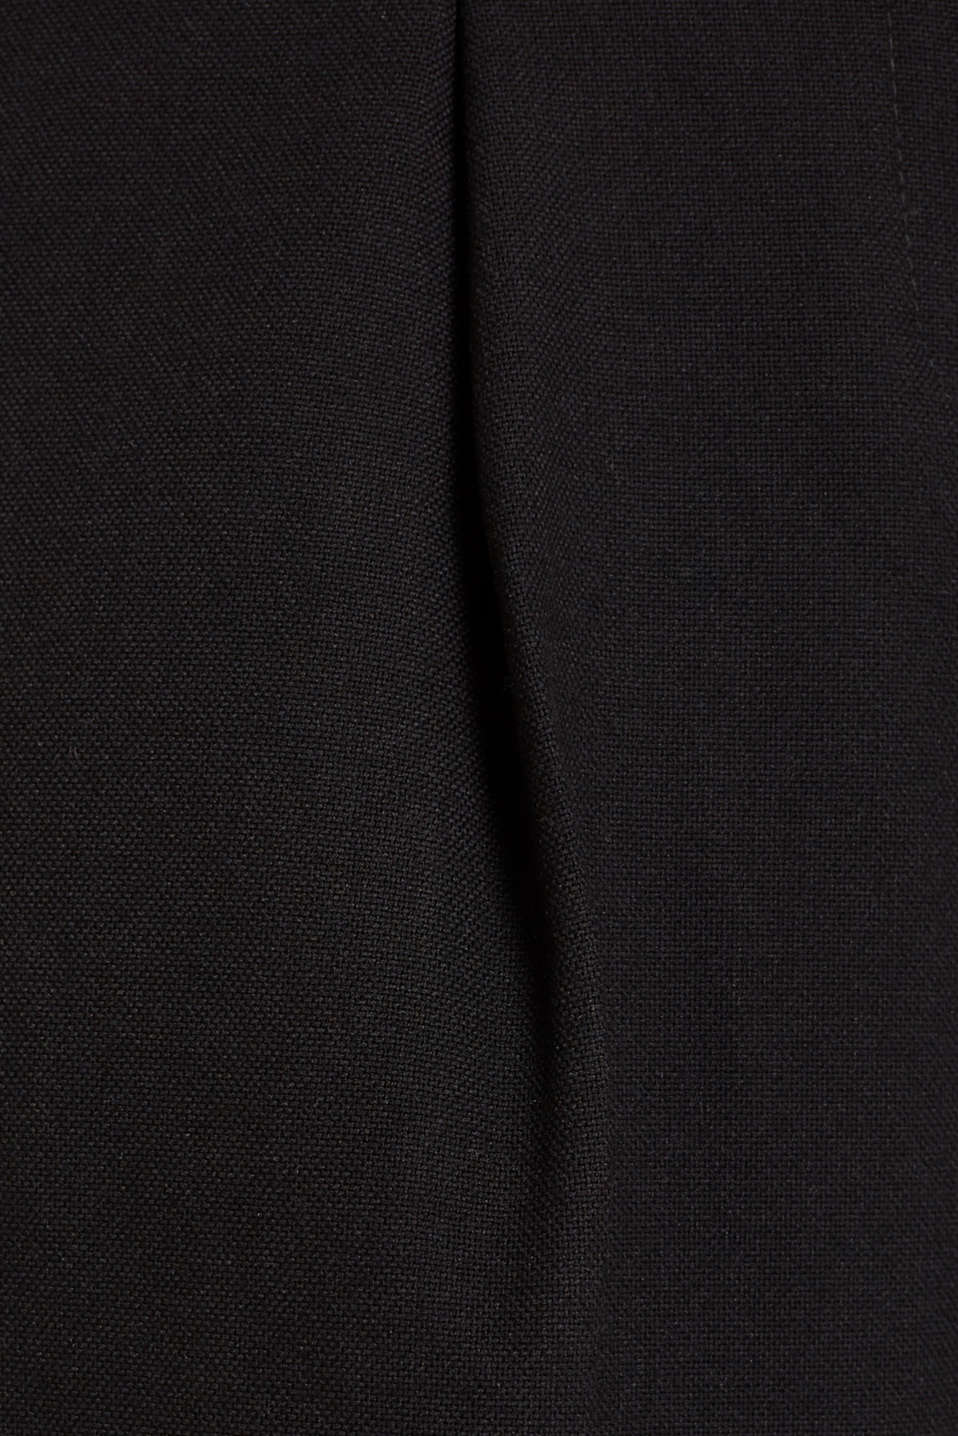 Wide high-rise trousers with a belt, BLACK, detail image number 4